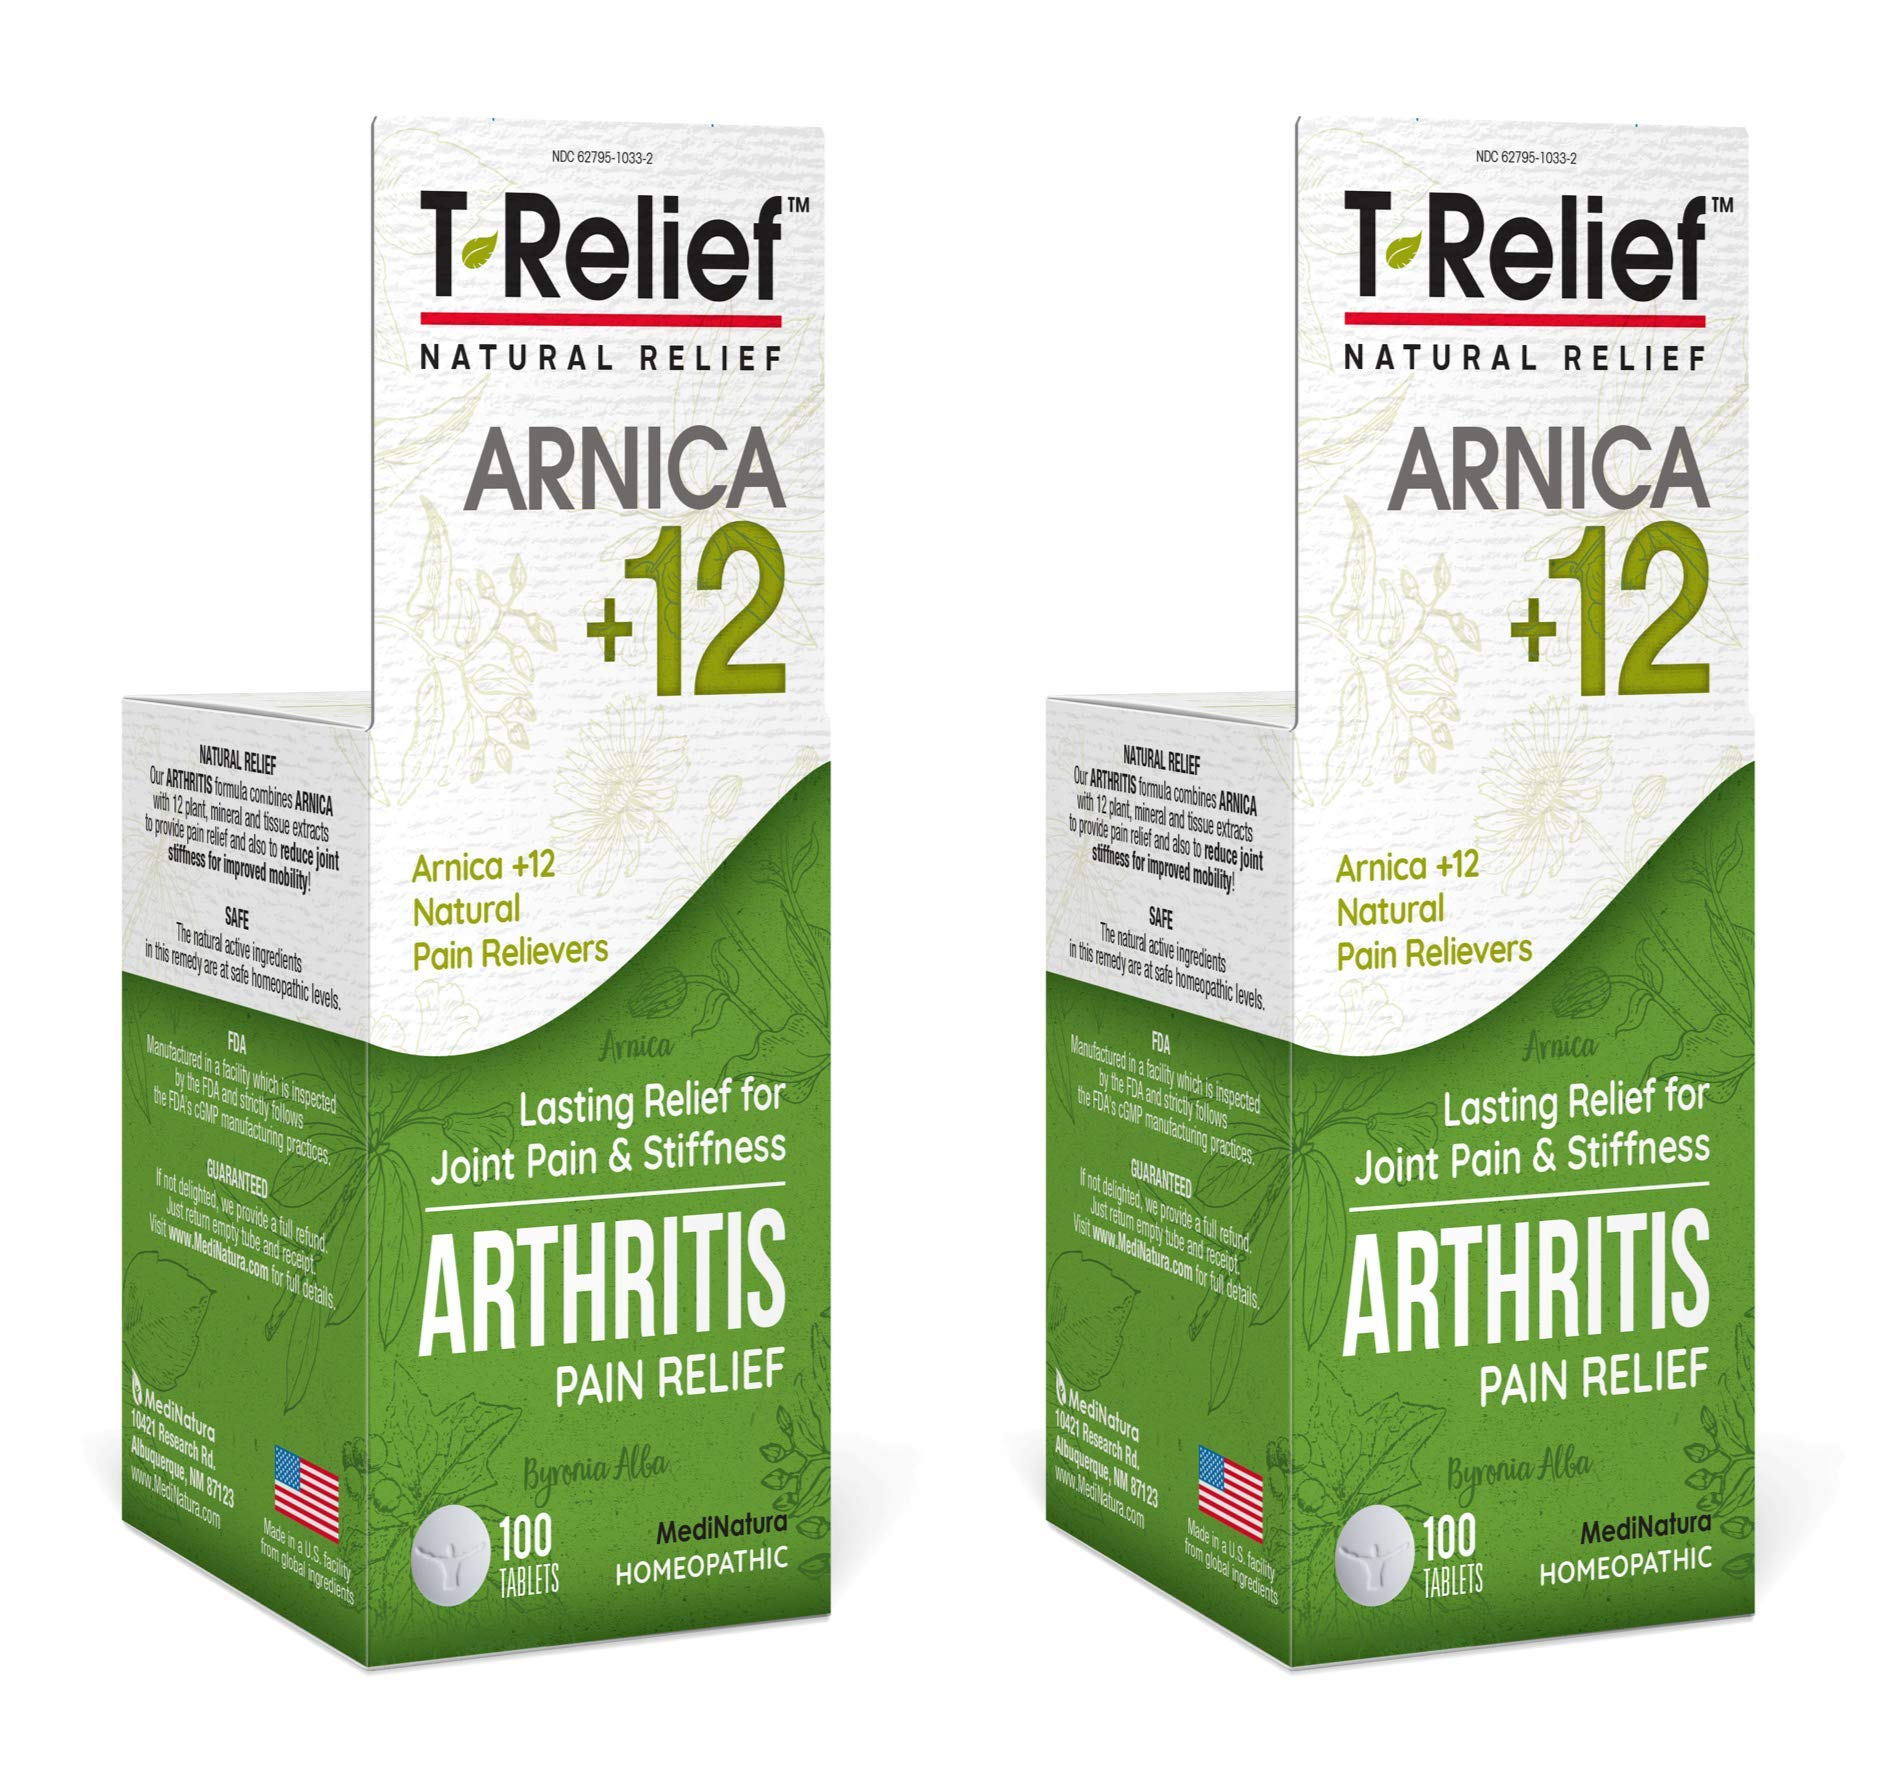 MediNatura T-Relief Arthritis Pain Relief with Arnica + 12 Active Pain Relievers- 100 Tablets (Pack of 2)